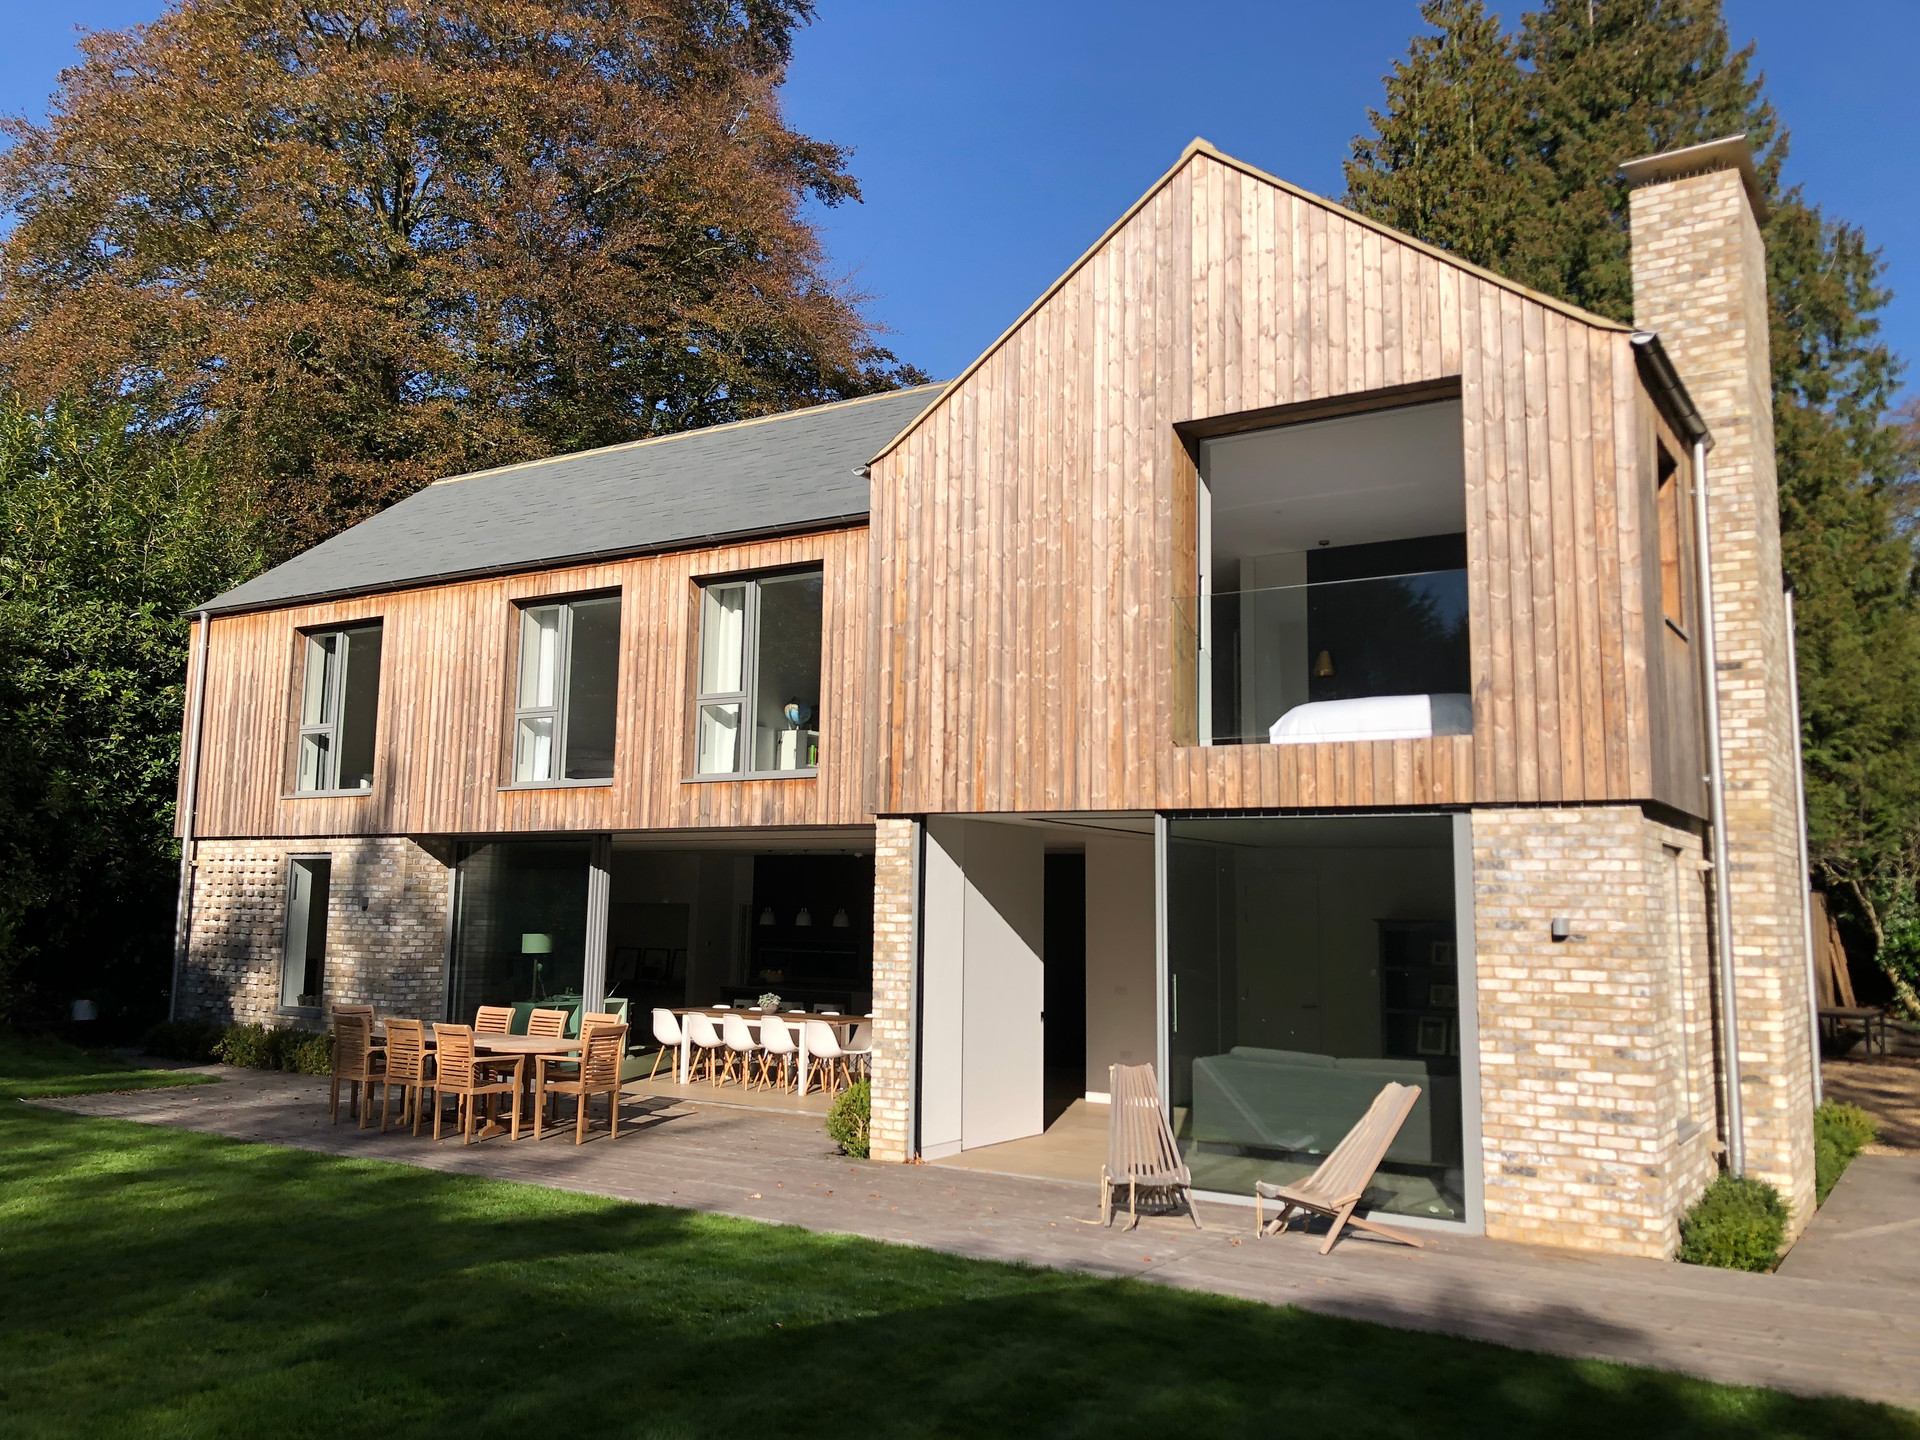 Modern house with vertical timber cladding in Haslemere, Surrey